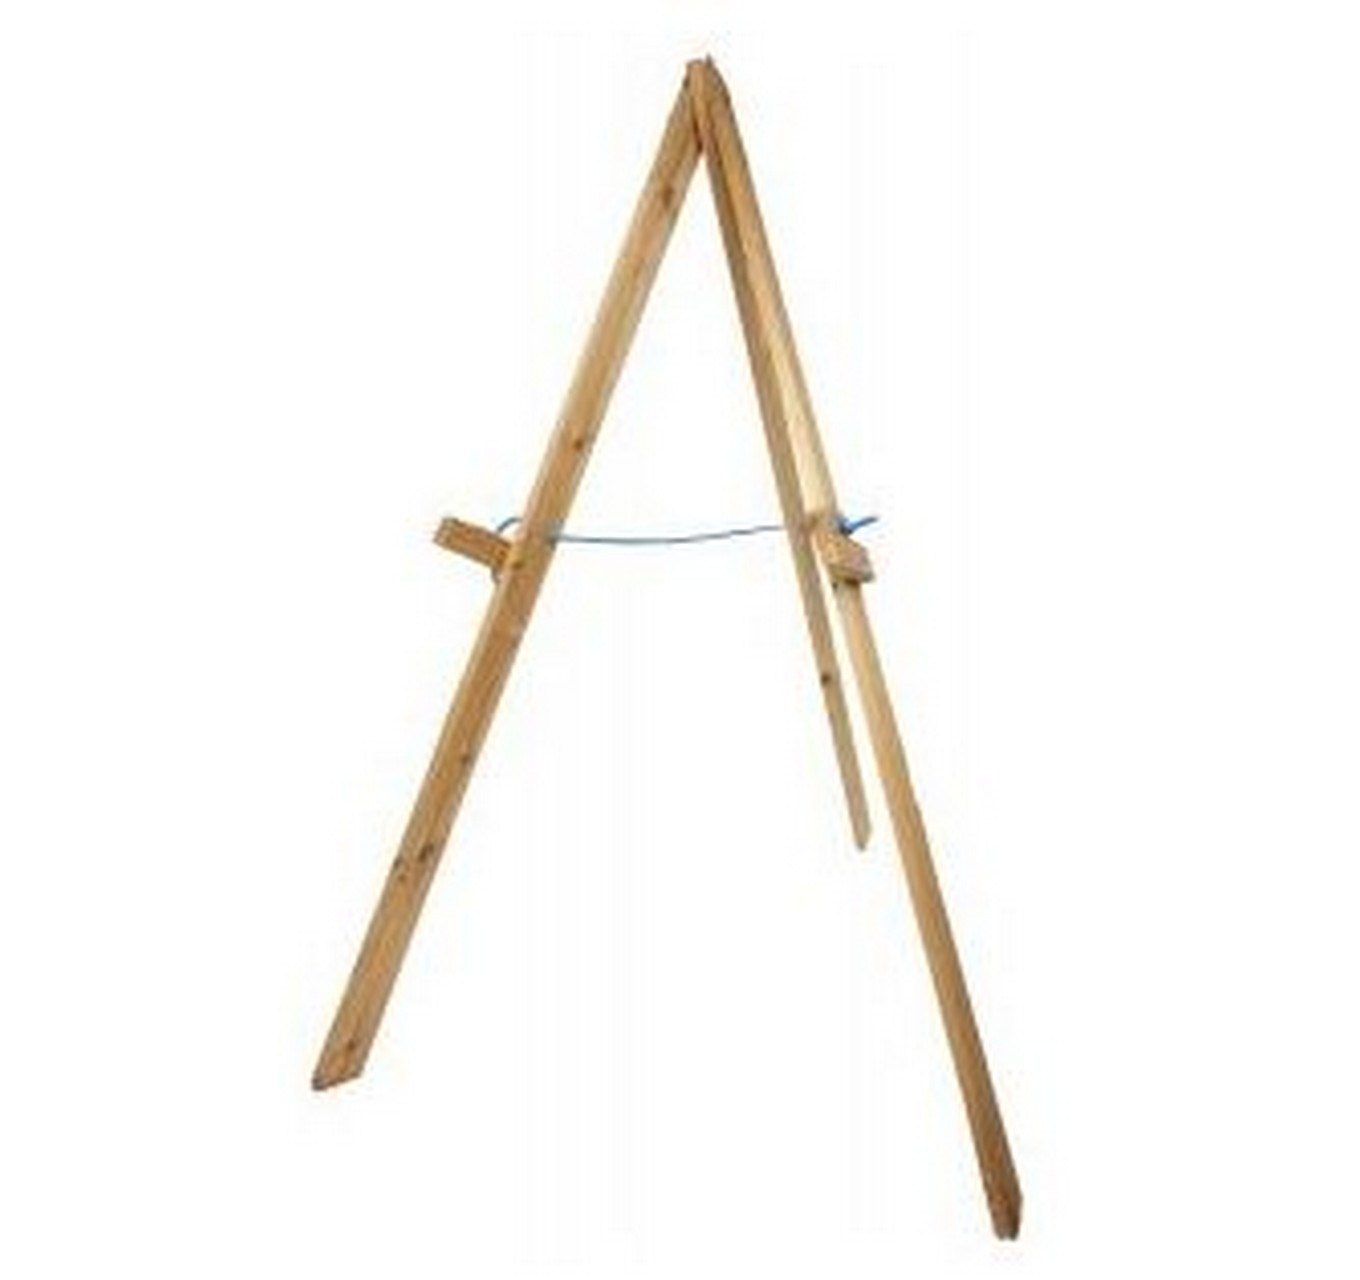 Wooden Archery Target Stand